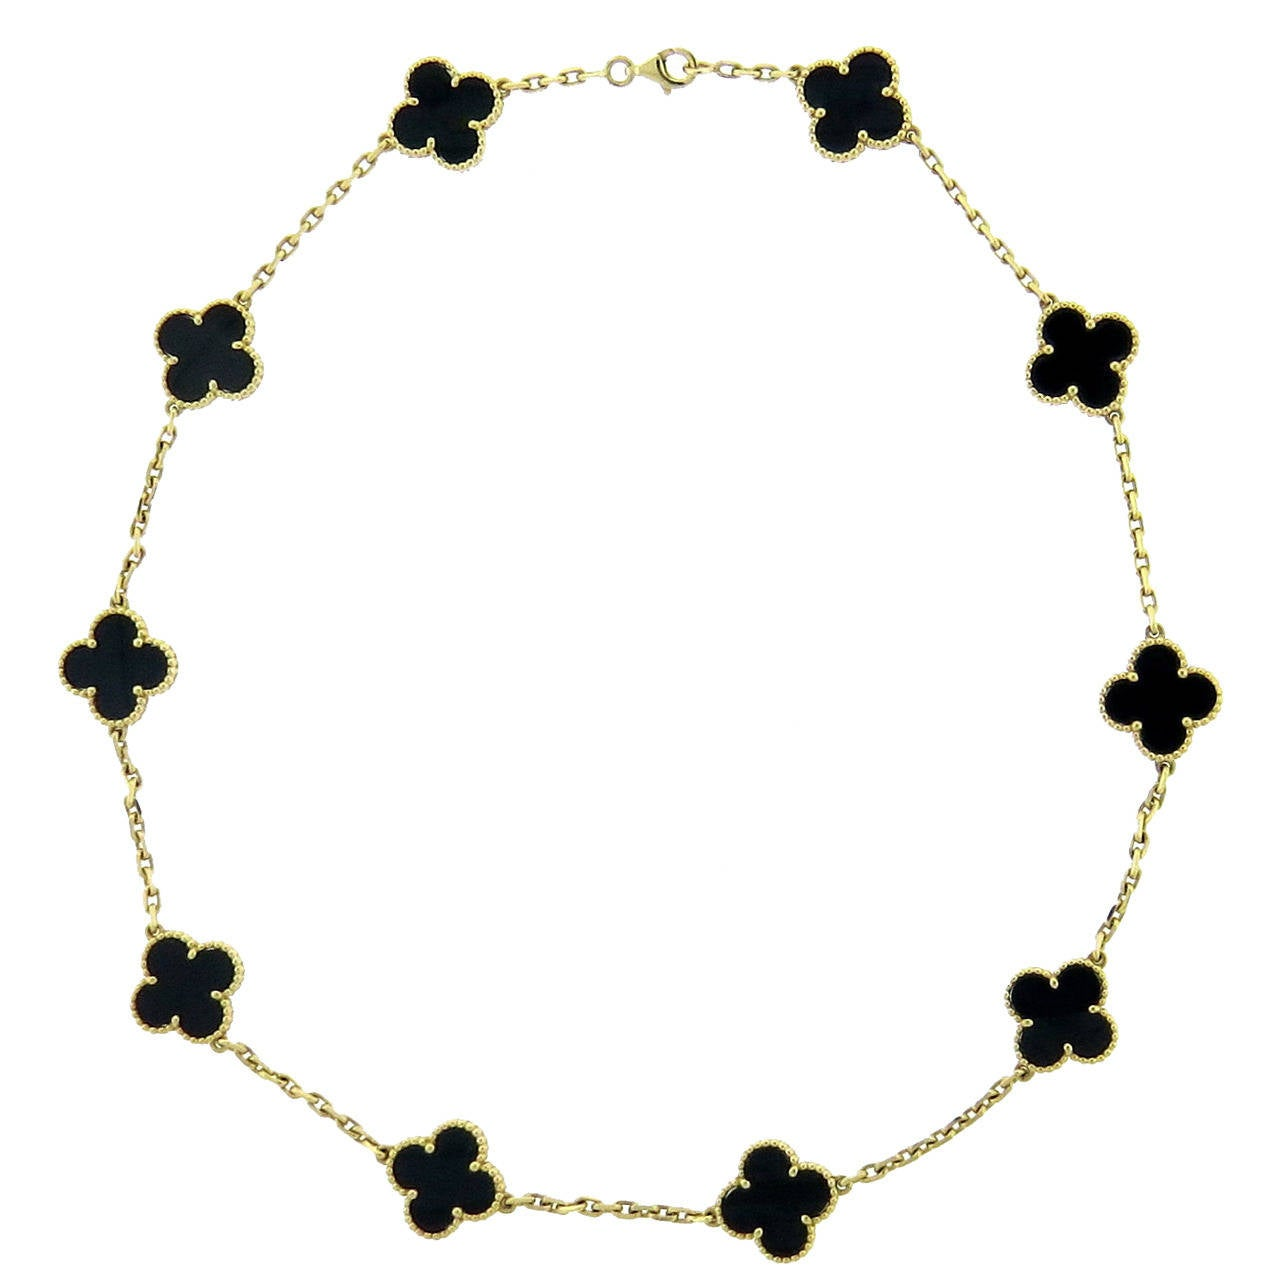 Van Cleef & Arpels Vintage Alhambra Onyx Gold Necklace For Sale